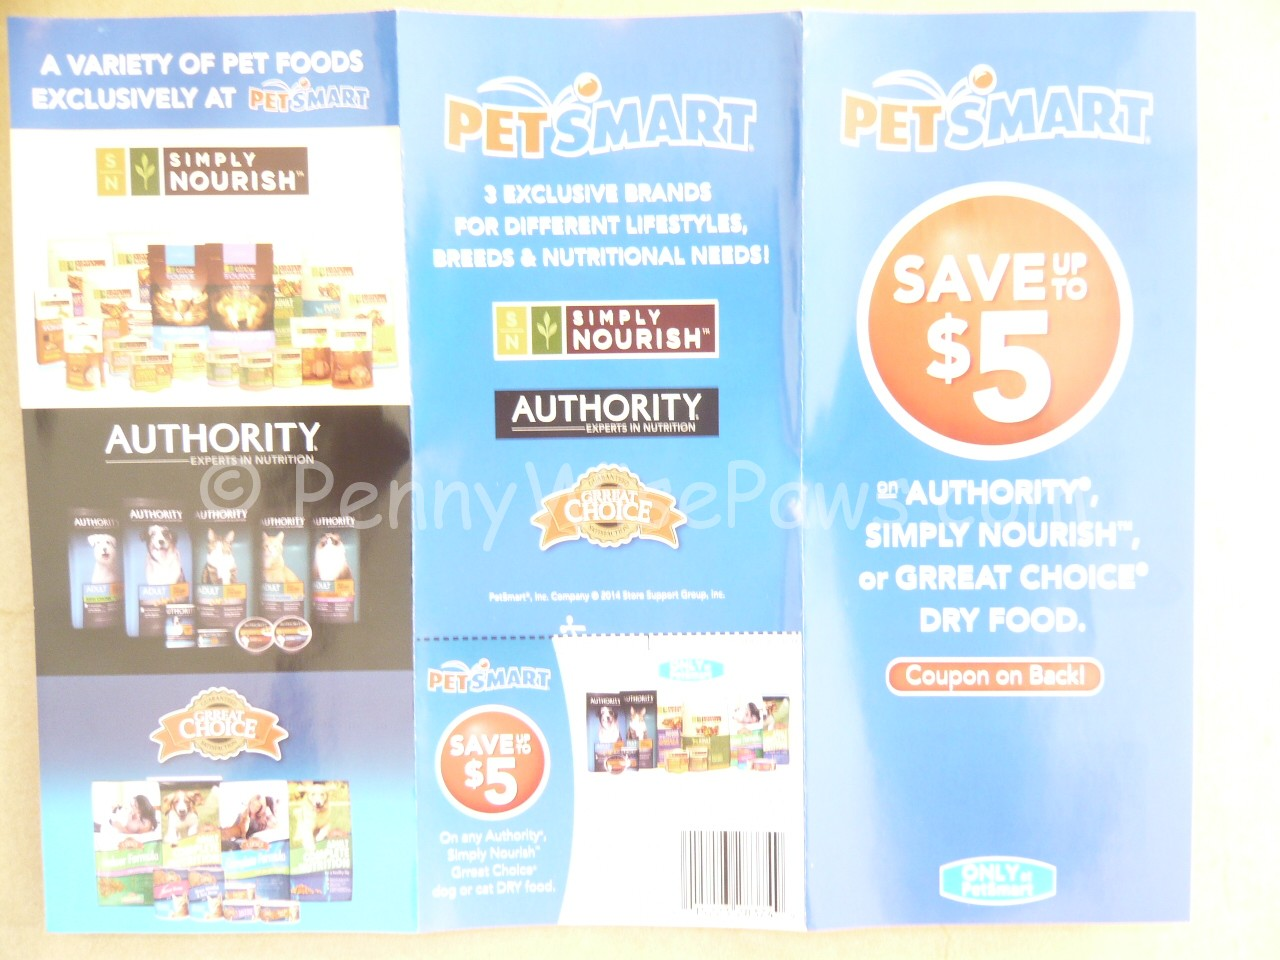 PetSmart Coupons & Promo Codes. Sort By: Popularity. Newest. Ending Soon. Add Favorite A couple of days ago you had a coupon for a free bag of dog food. We had used a coupon like those before that you had for two bags which the store had no problem honoring. PetSmart is the largest pet retailer in the US and specializes in offering pet.